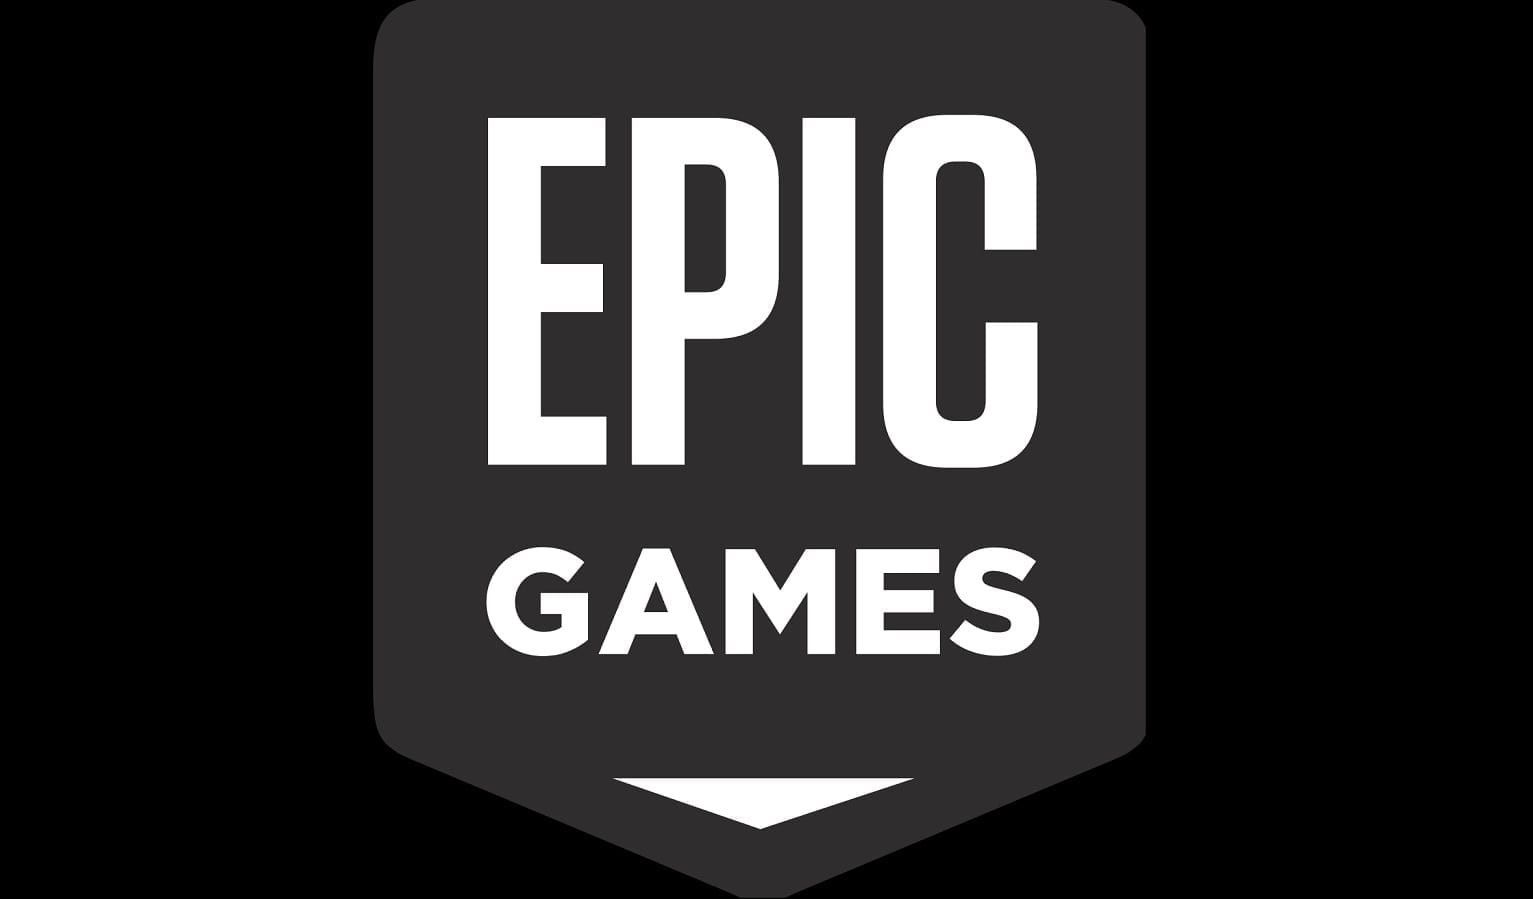 Epic Games Shuts Down Soulja Boy's Claims About Fortnite On His Consoles